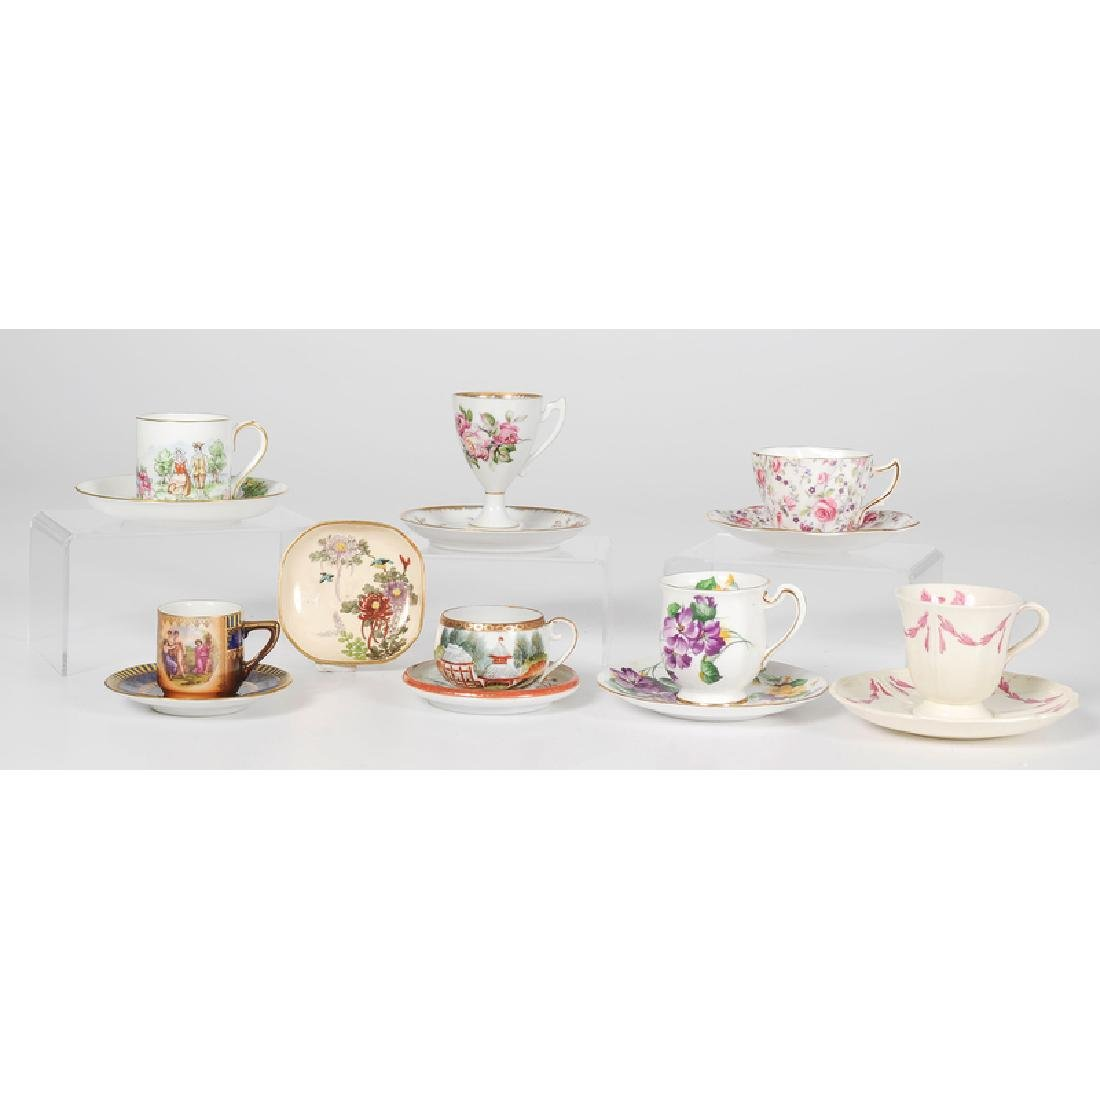 Assorted Collection of Teacups and Saucers - 2